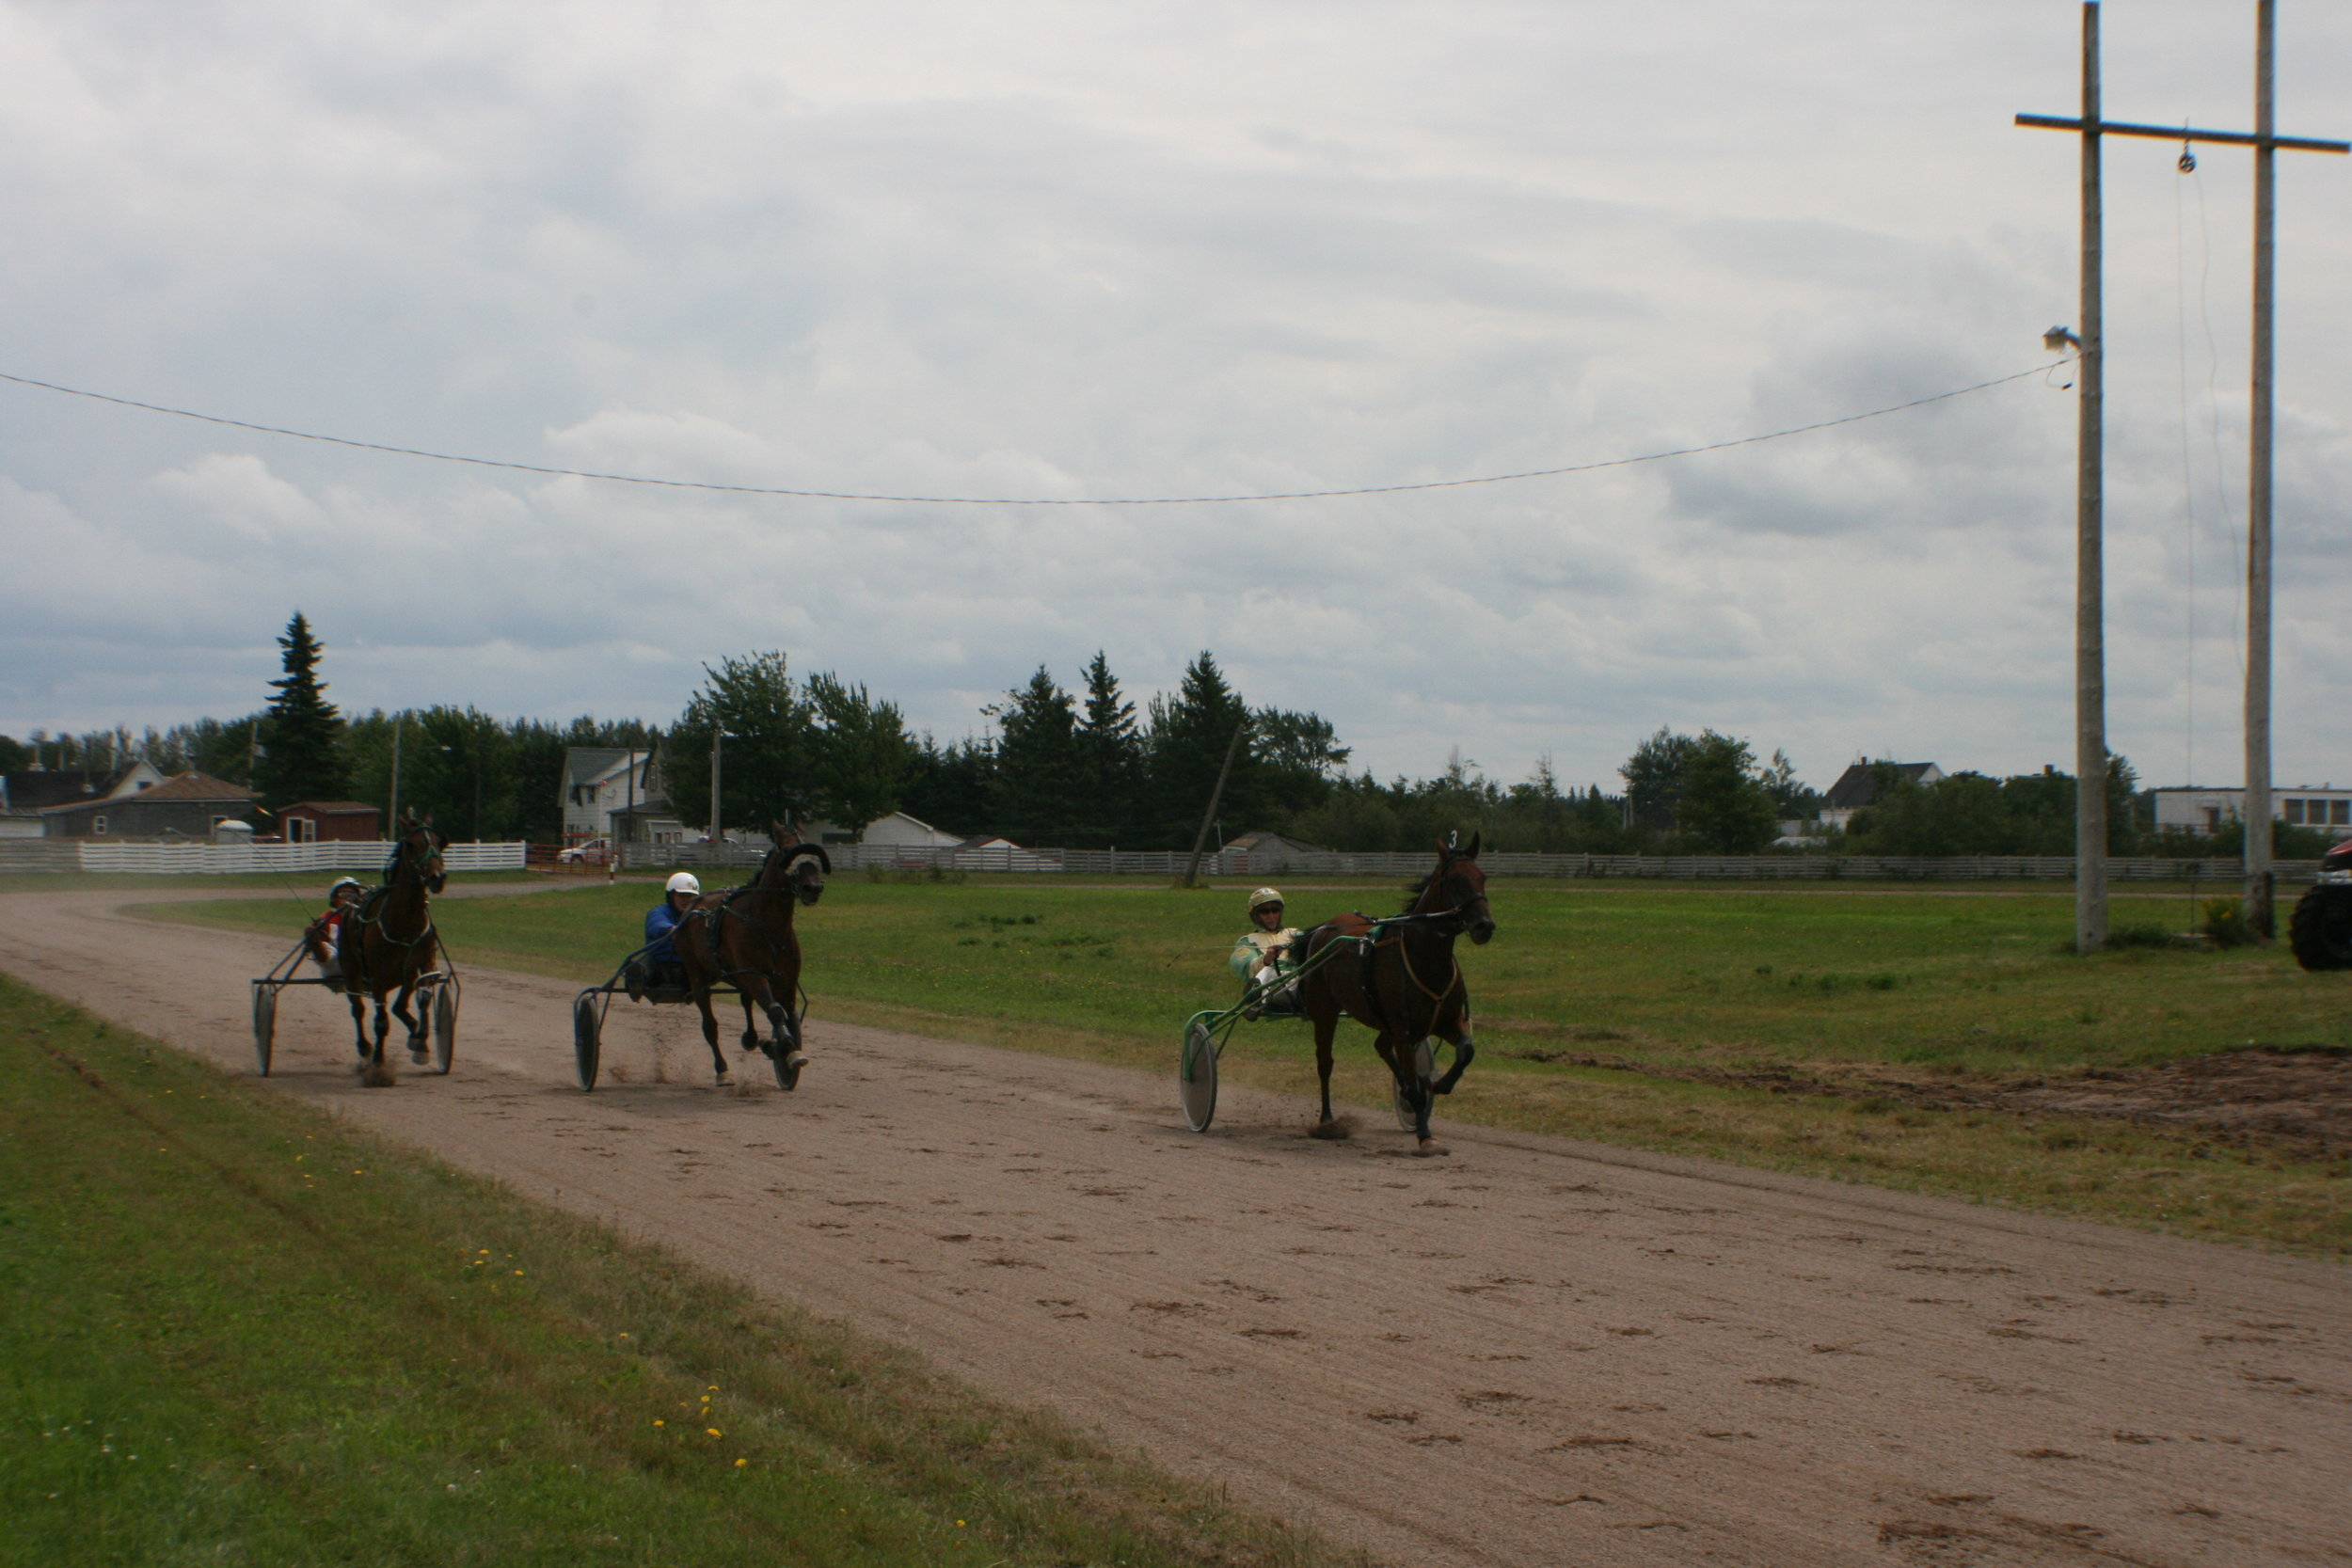 Three entrants race into the home stretch during a matinee card of exhibition harness racing at the Port Elgin Exhibition on Aug. 20. (Joan LeBlanc photo)